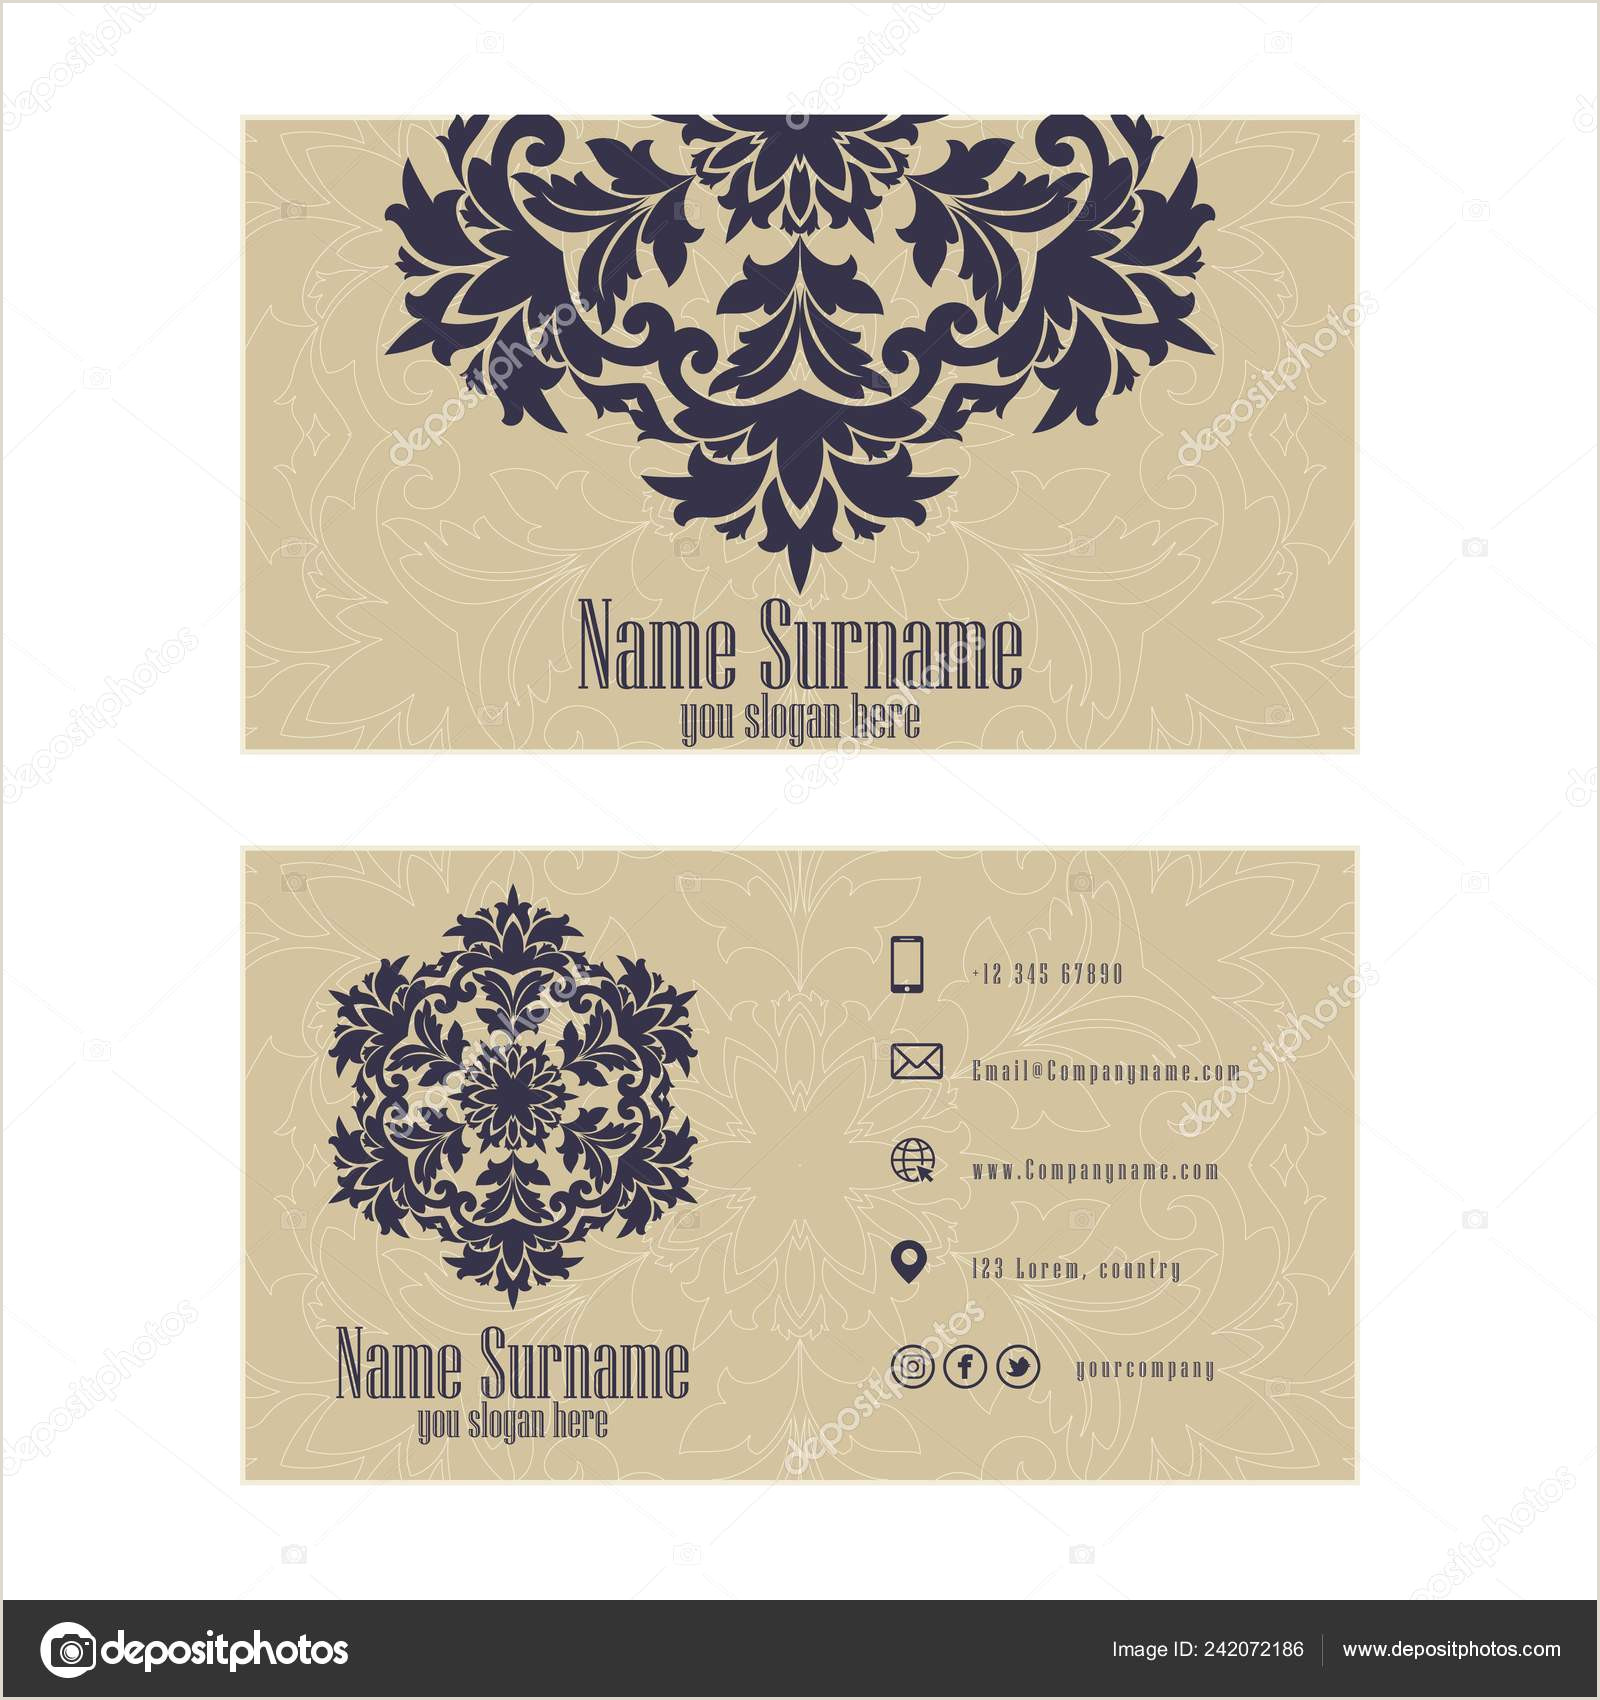 Unique Business Cards For Service Excellance Corporate Business Or Visiting Card Professional Designer Vector Abstract Creative Business Cards